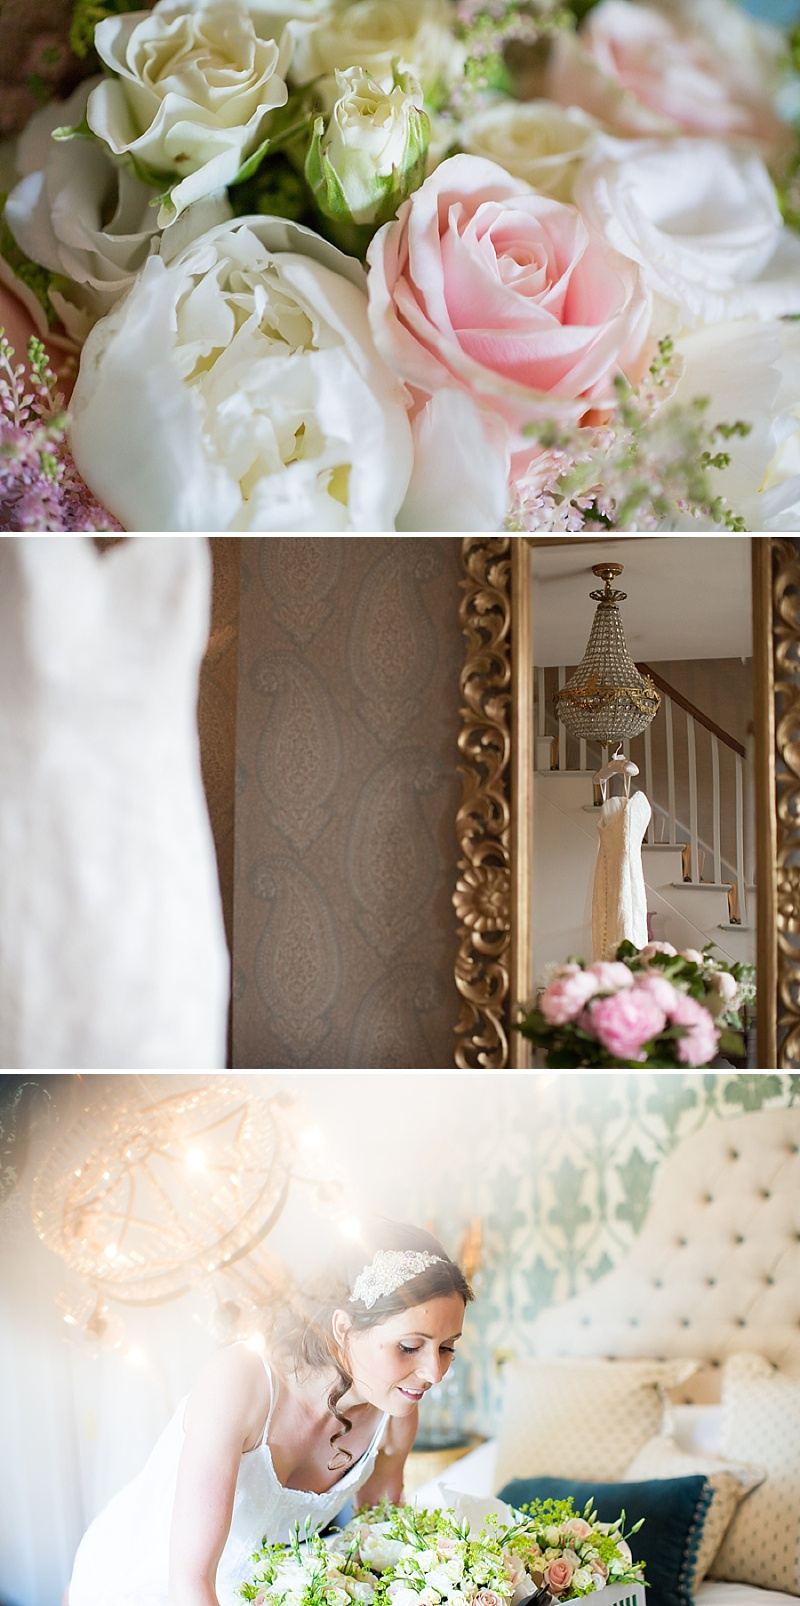 Elegant Wedding At Holkham Hall Norfolk With Bride In Hepburn By Suzanne Neville With Rachel Simpson Bridal Shoes And Nude Bridemaids Dresses From Ted Baker Images From Katherine Ashdown_0001